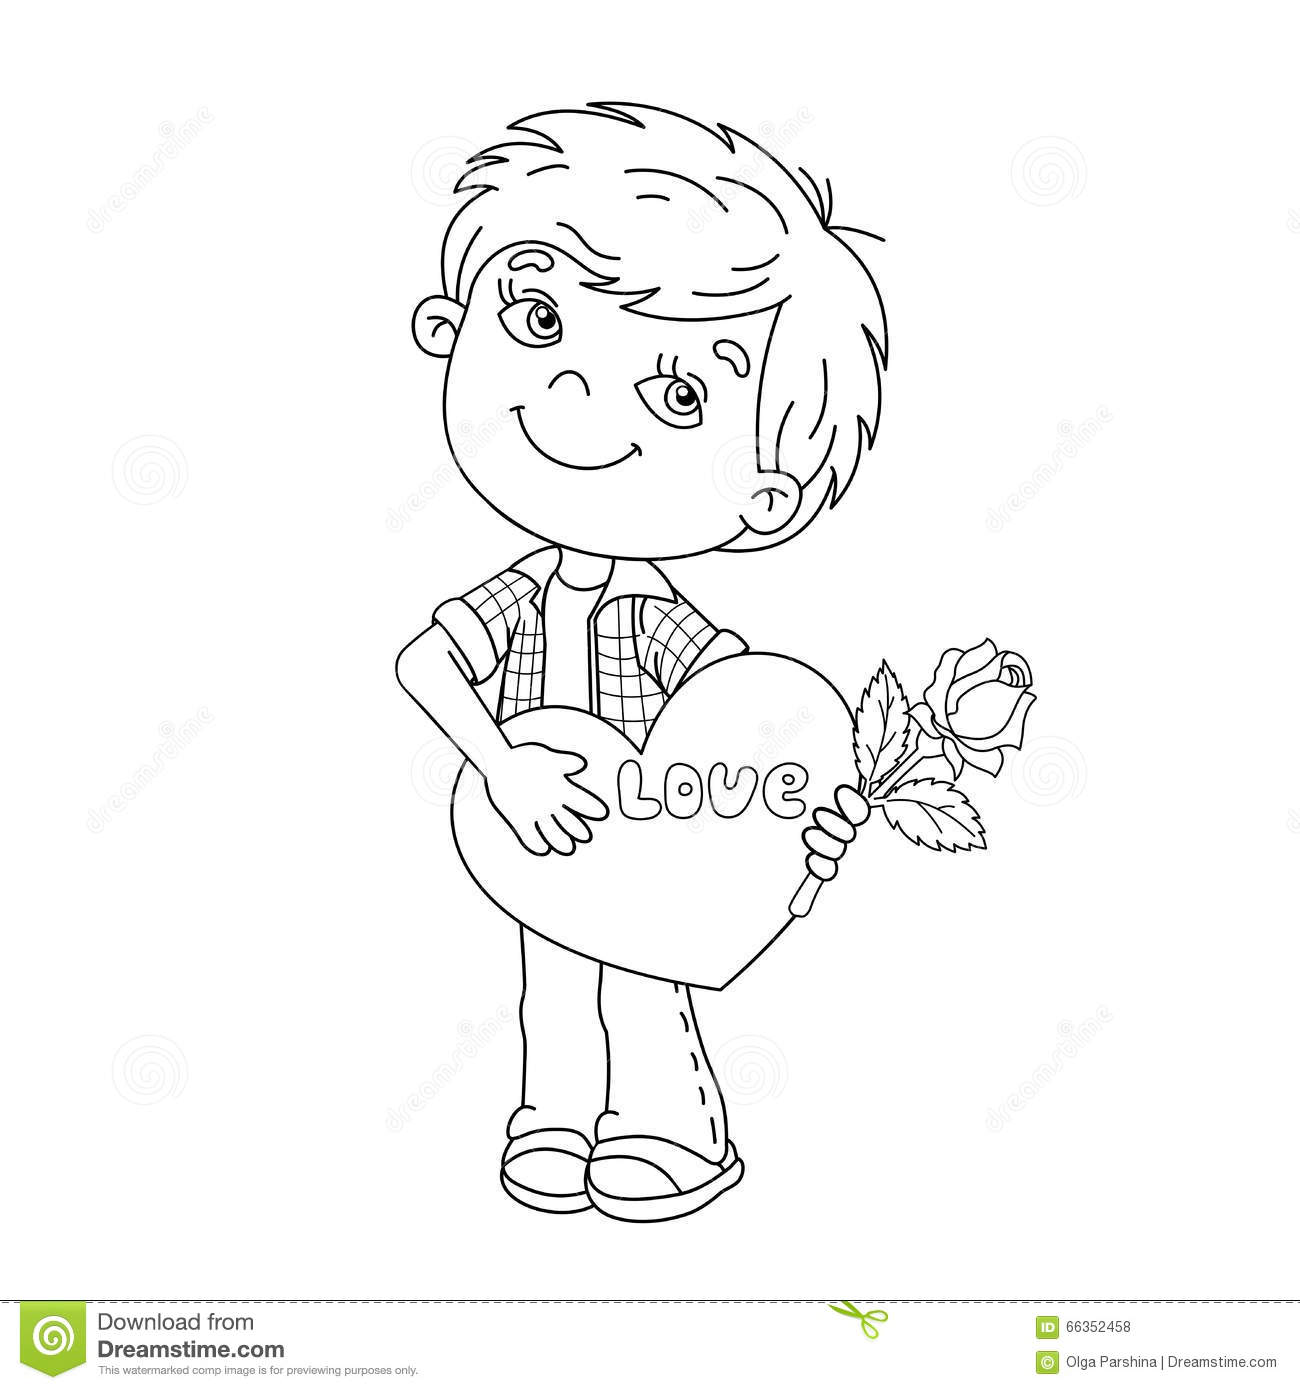 Coloring page outline of boy with rose in hand with heart for Boy outline coloring page